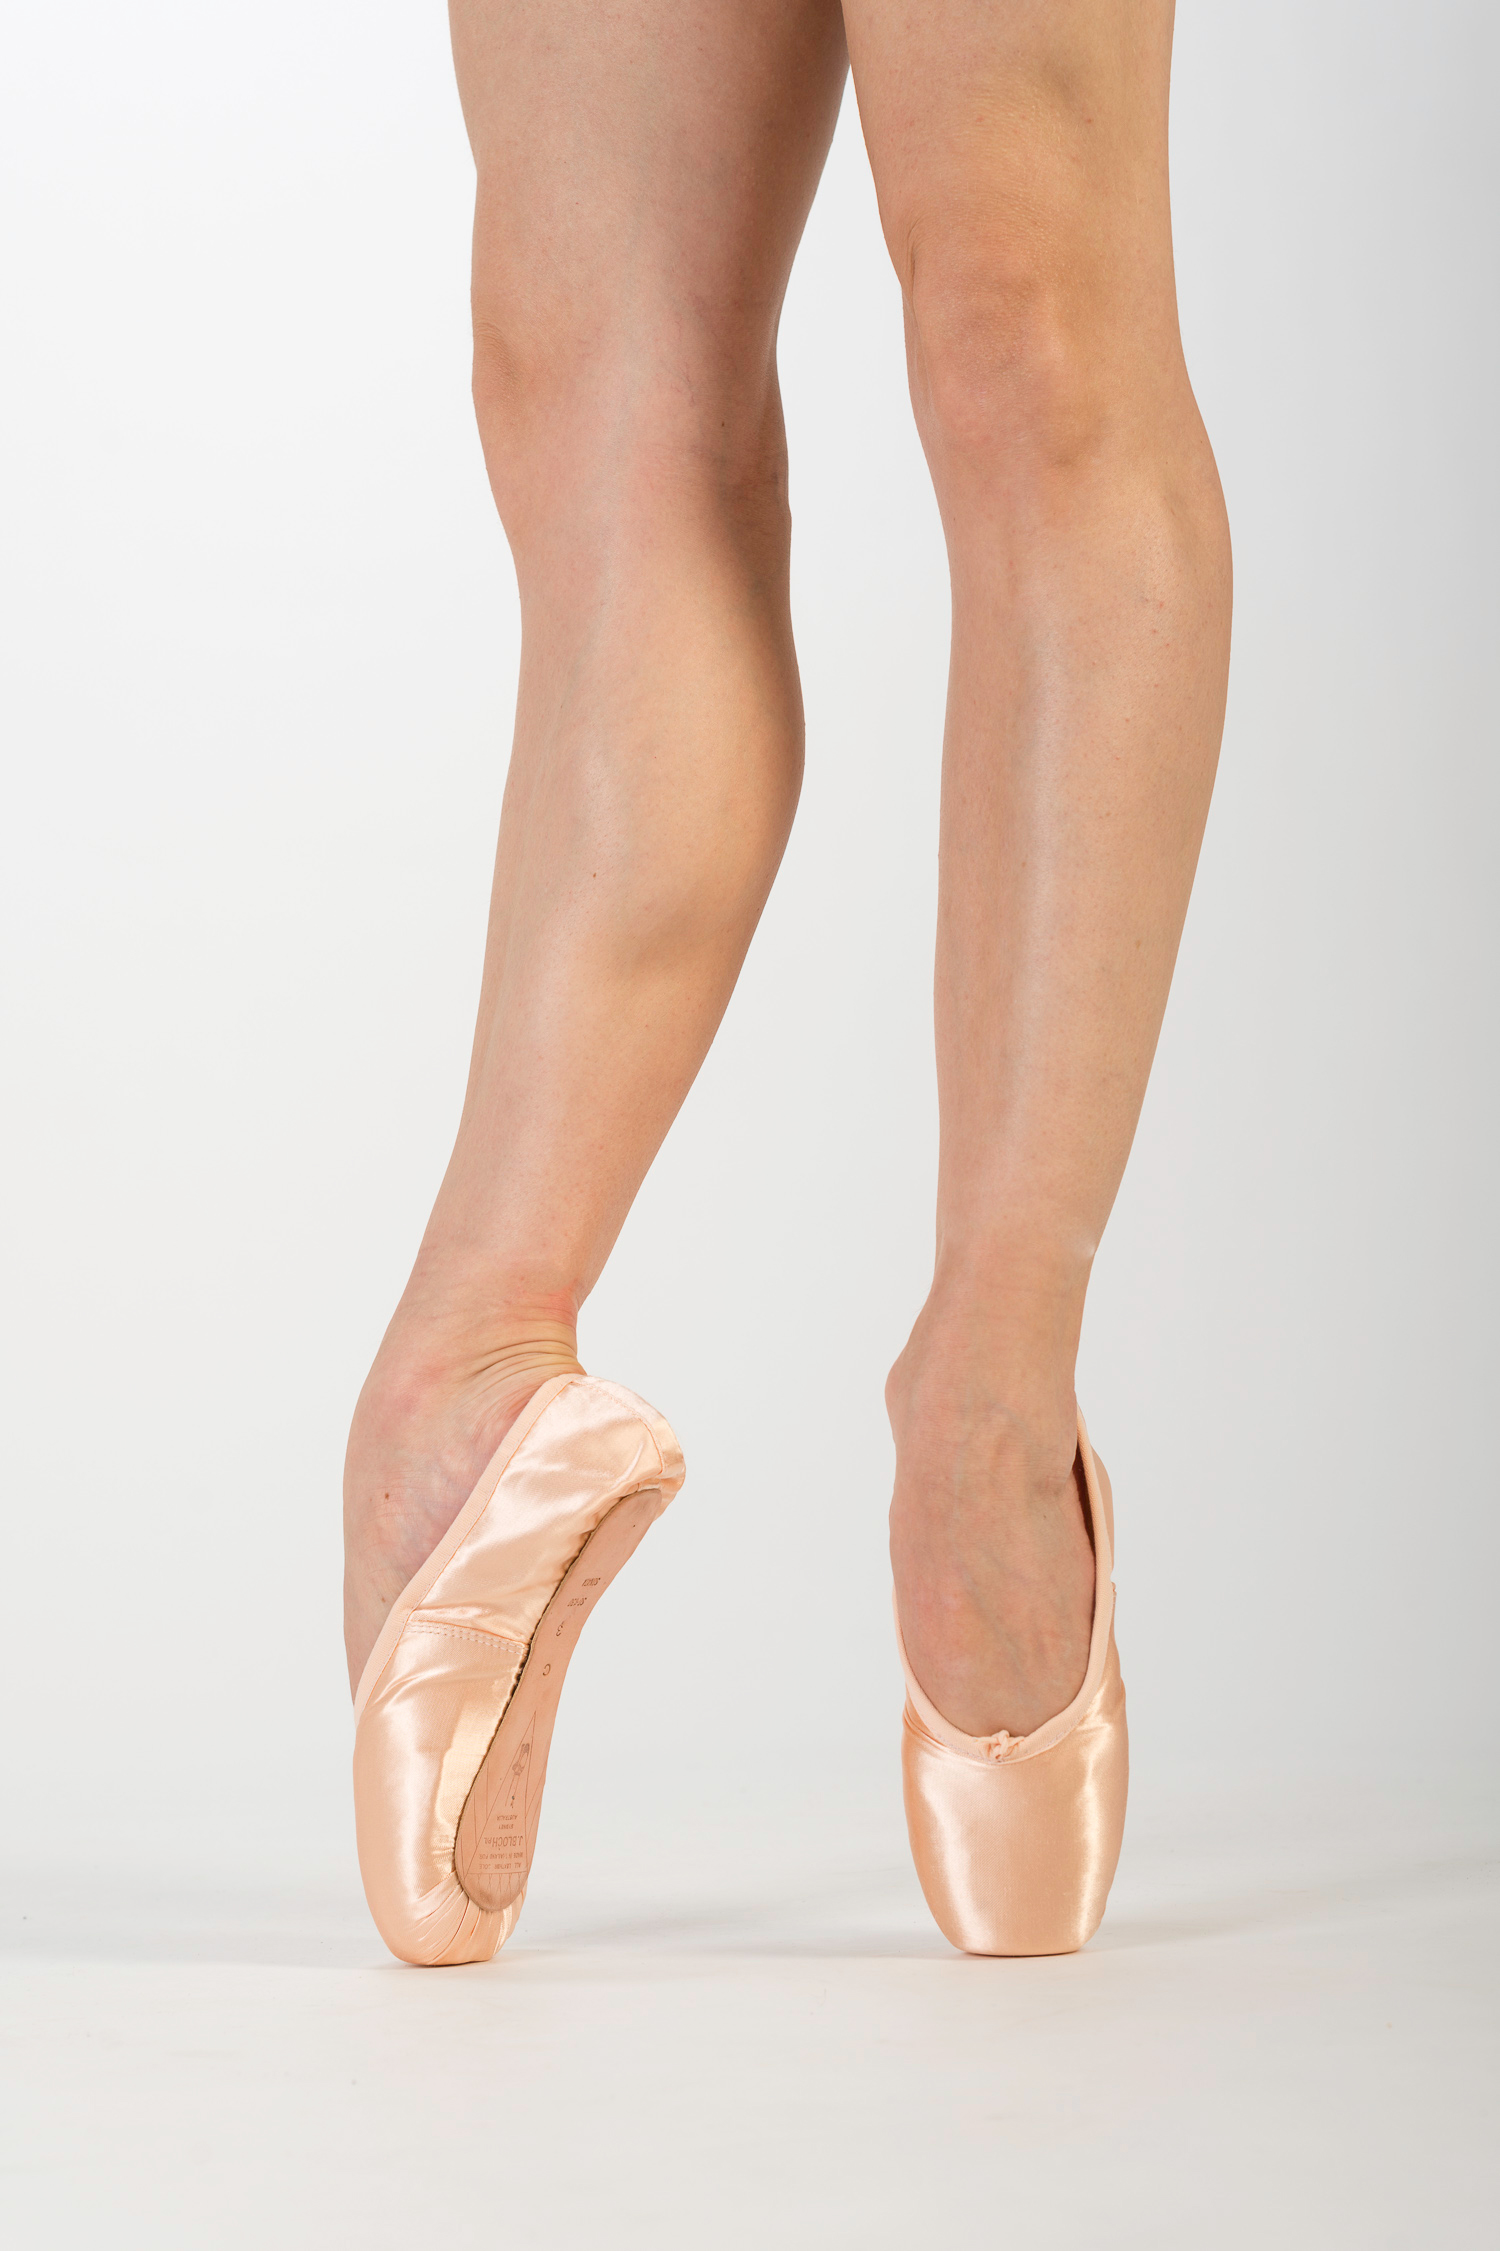 Bloch pointe shoes - Mademoiselle danse a747ebc35a